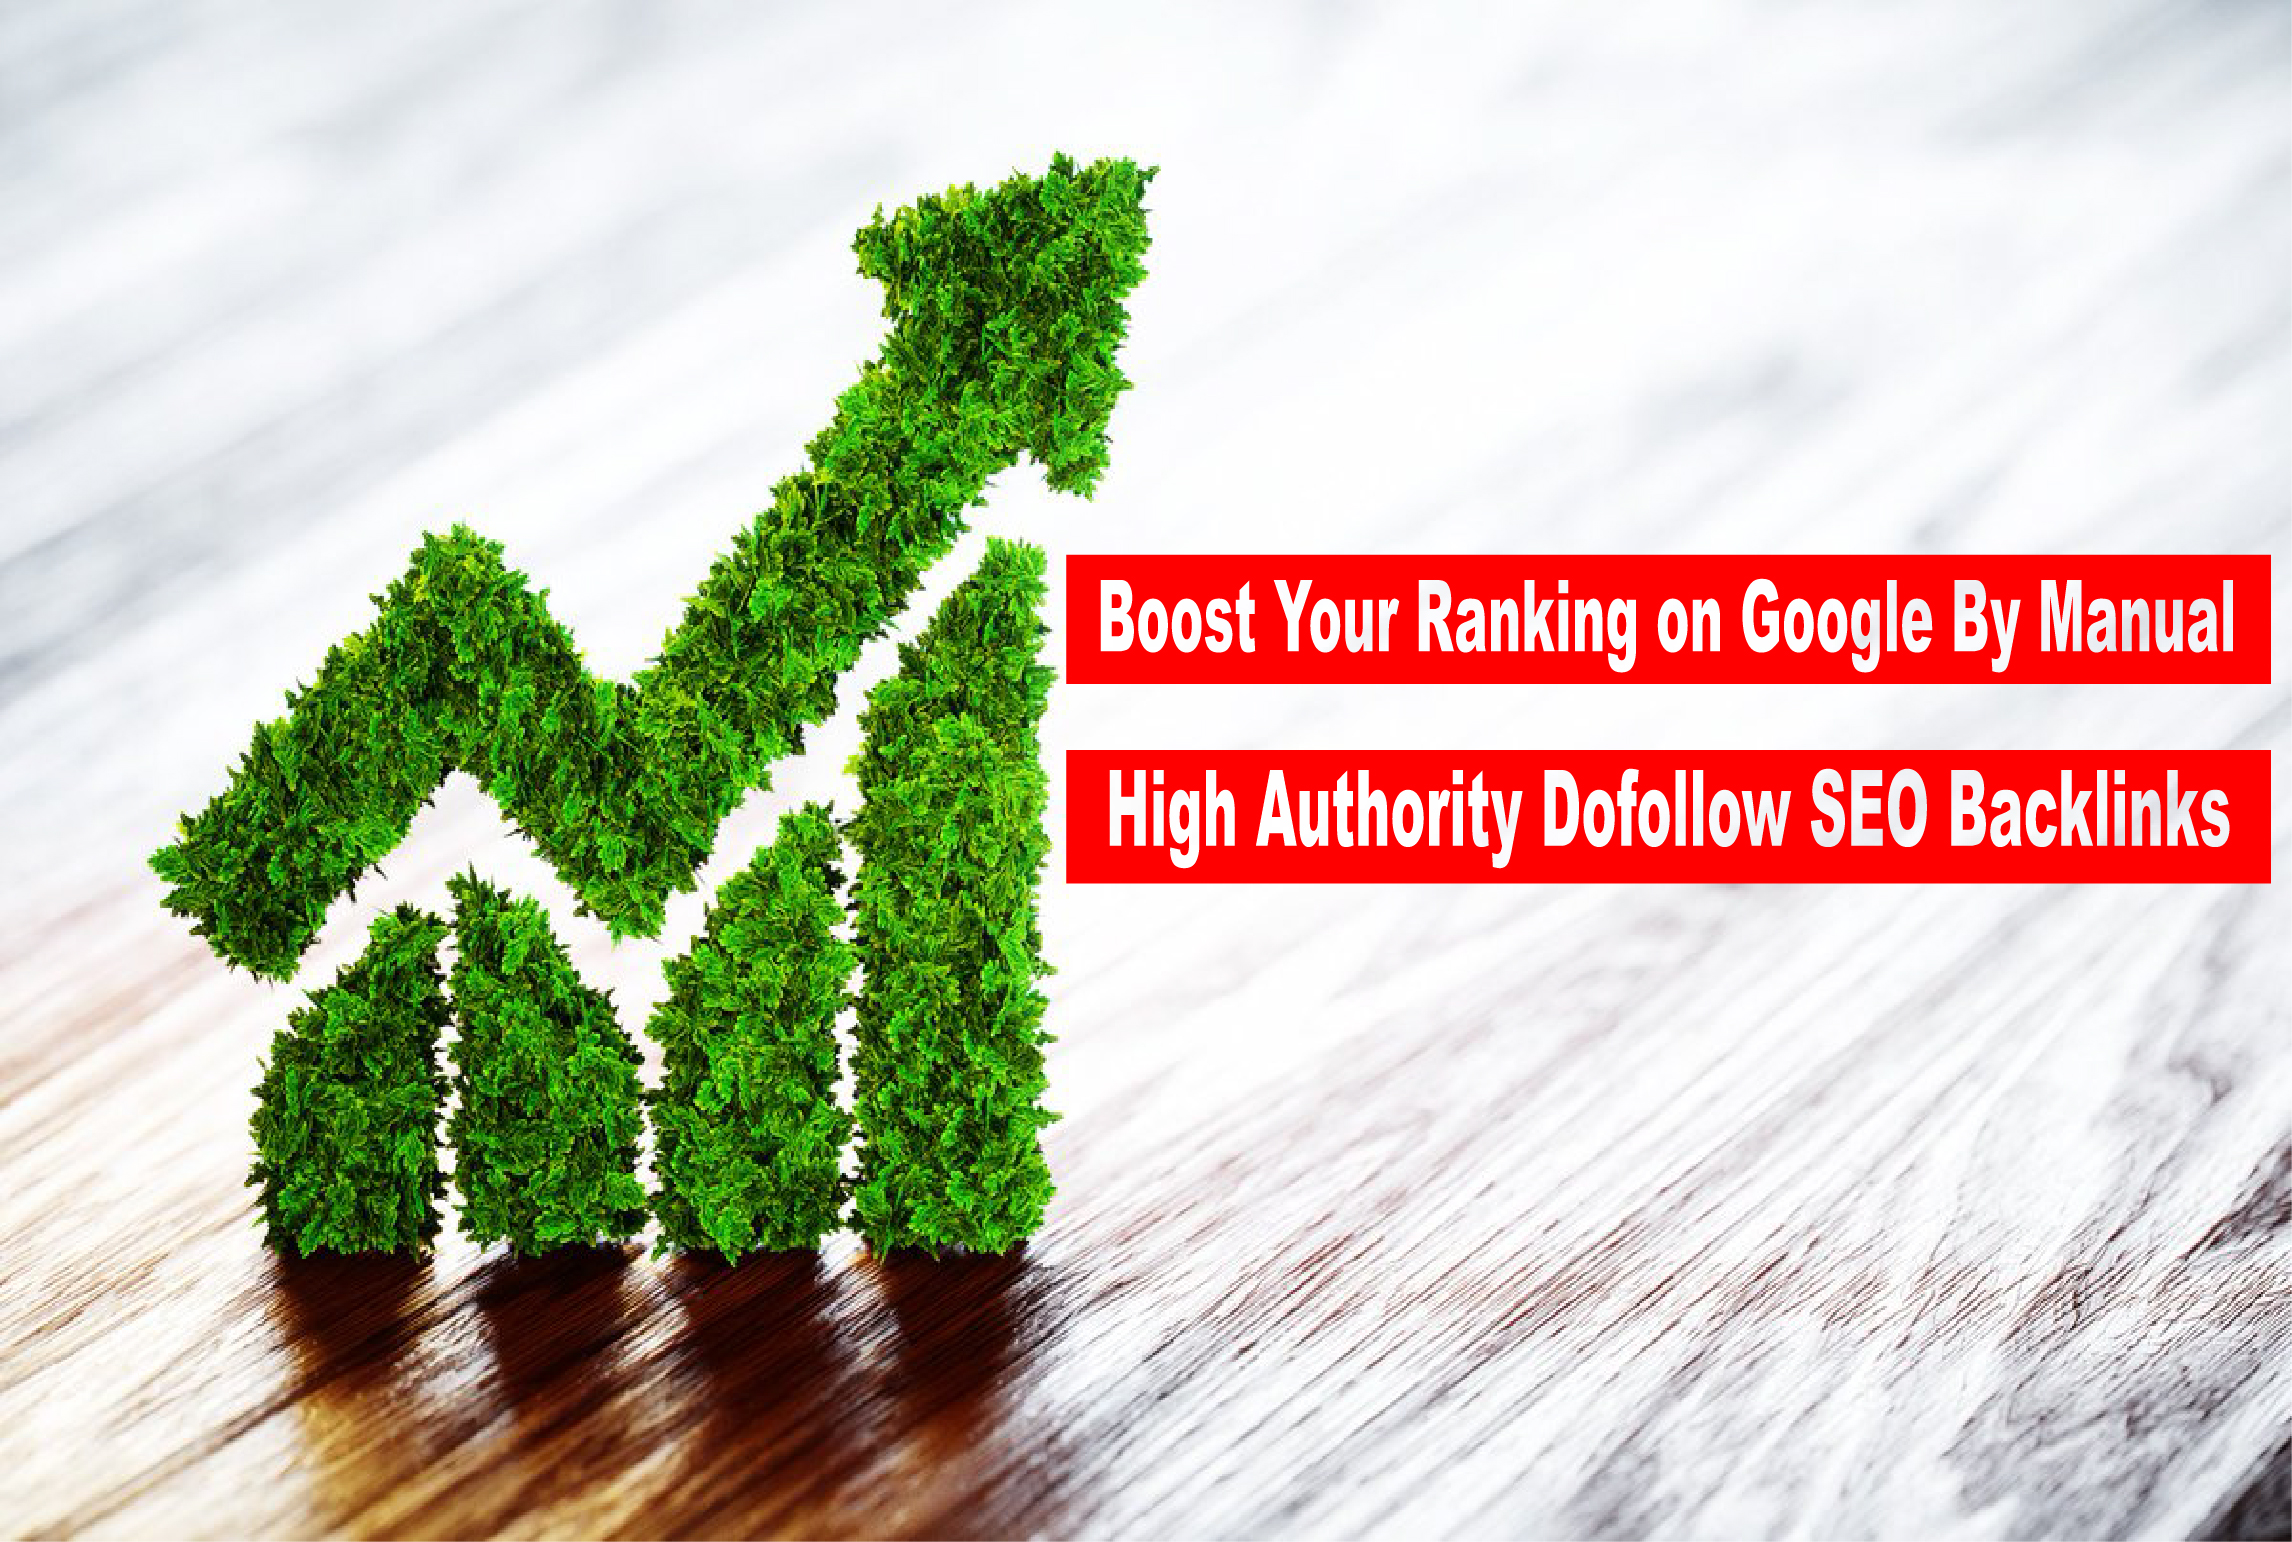 Increase Ranking with 50 Unique Domain High Authority Web 2.0 Backlinks